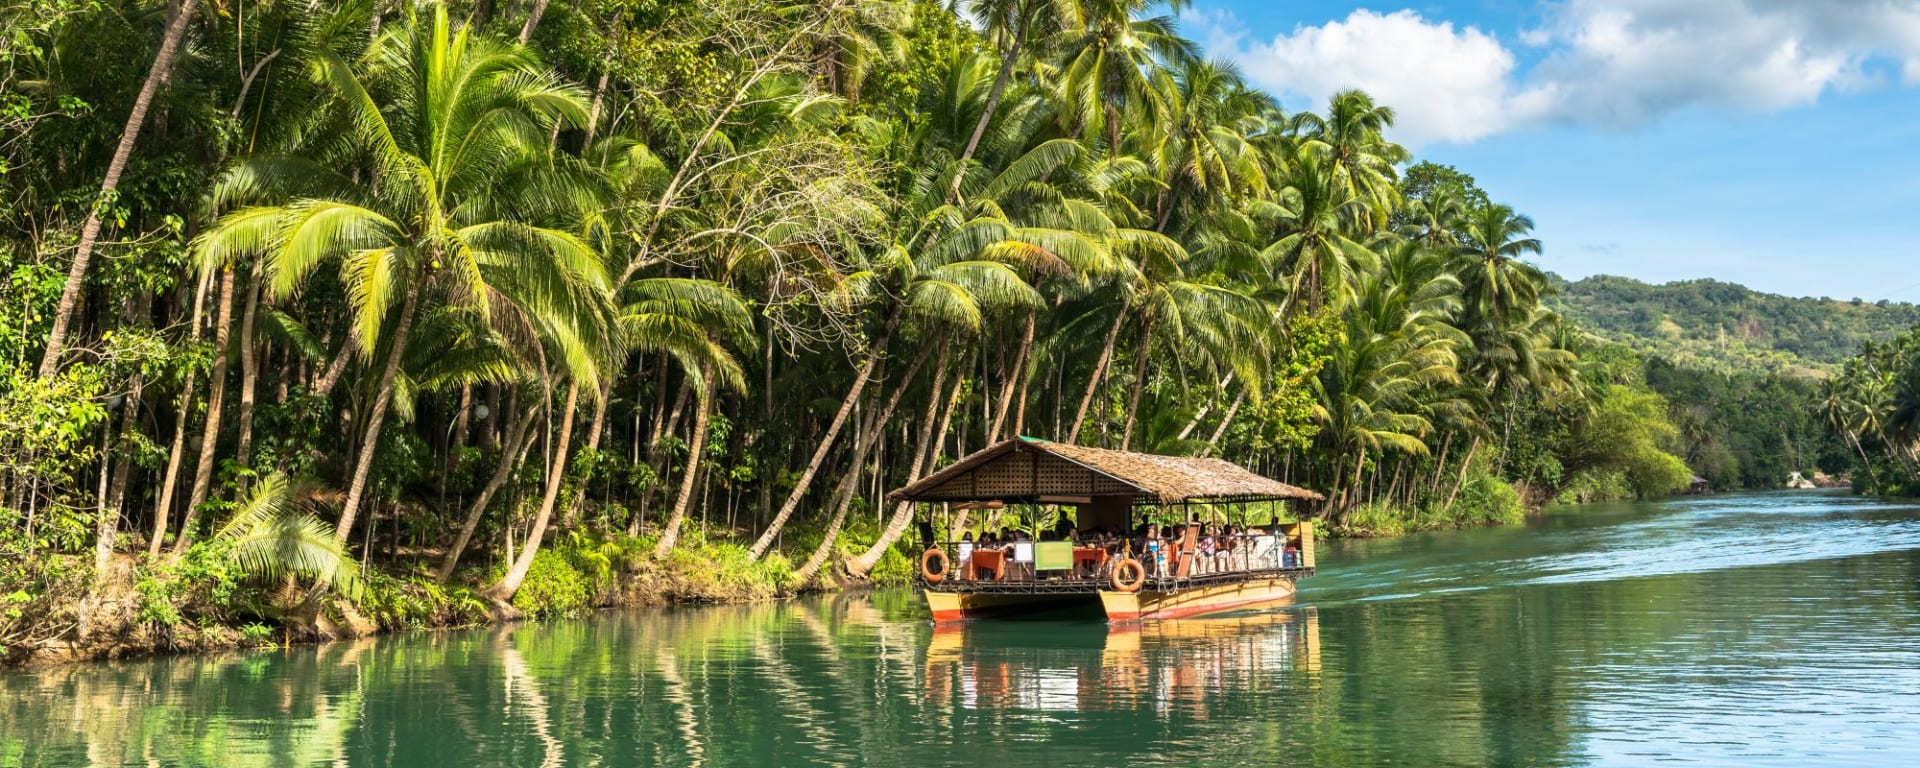 Naturwunder Bohol: Traditional raft boat on a jungle green river Loboc